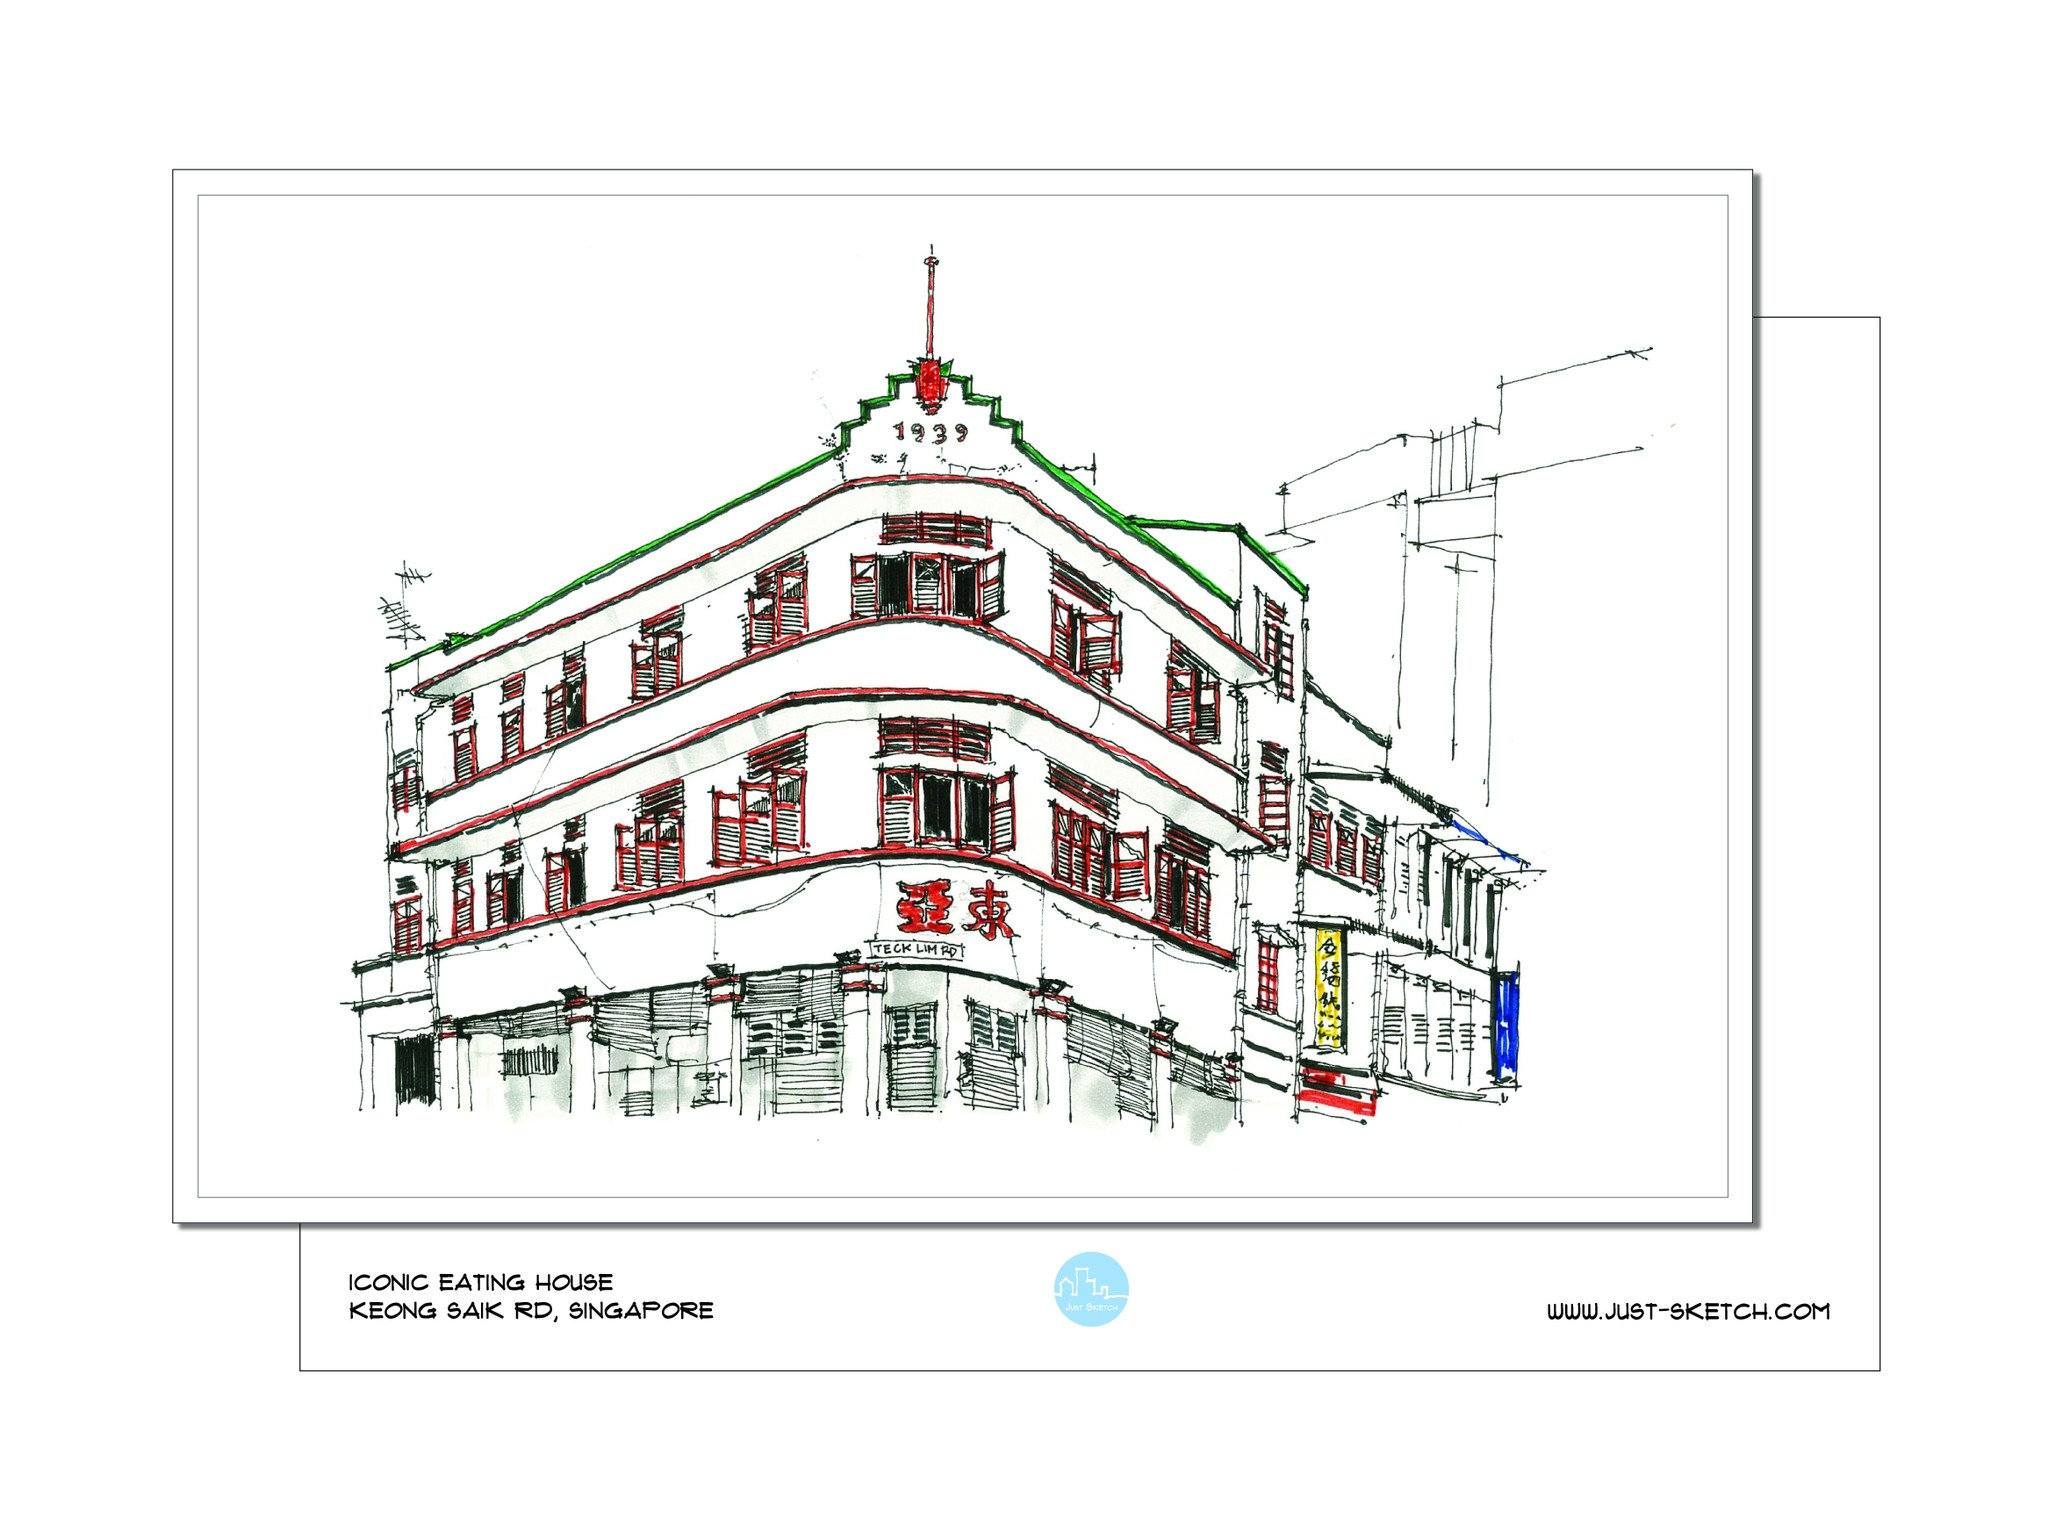 Iconic Eating House Postcard - Local Postcards - Just Sketch - Naiise